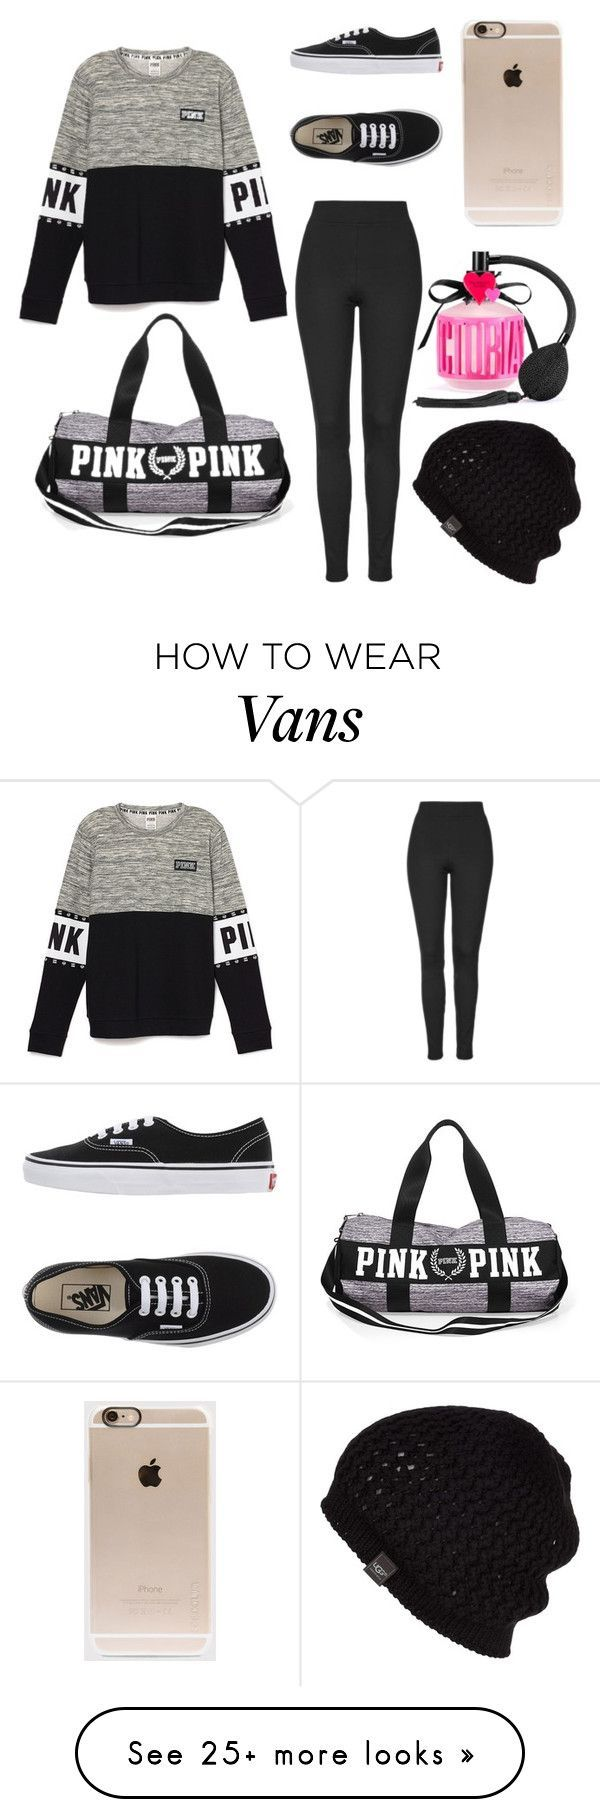 """Pink+Vans"" by perfect25 on Polyvore featuring Vans, Incase, Topshop, Victoria's Secret, UGG Australia, women's clothing, women's fashion, women, female and woman"